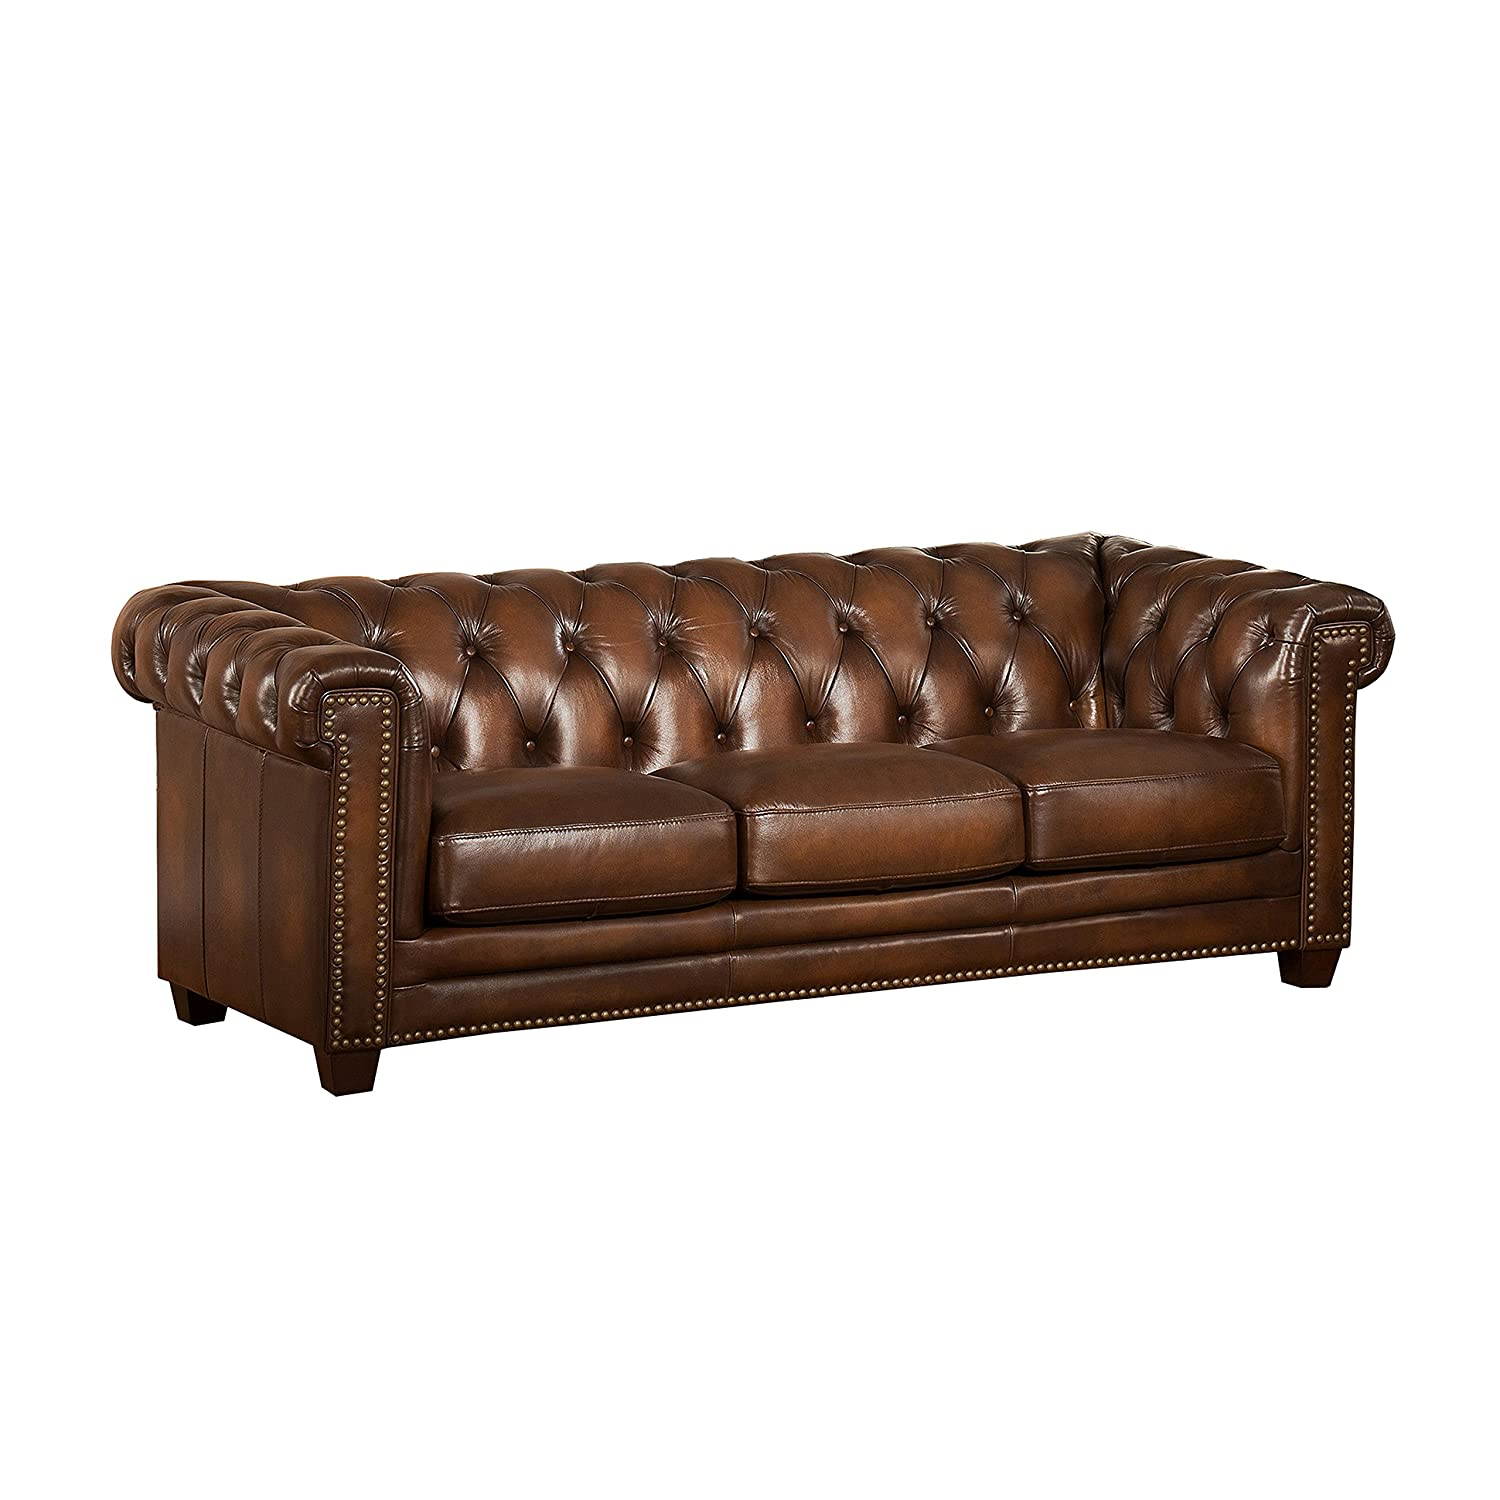 Amax Leather Stanley Park II 100% Leather Sofa Brown Amazon